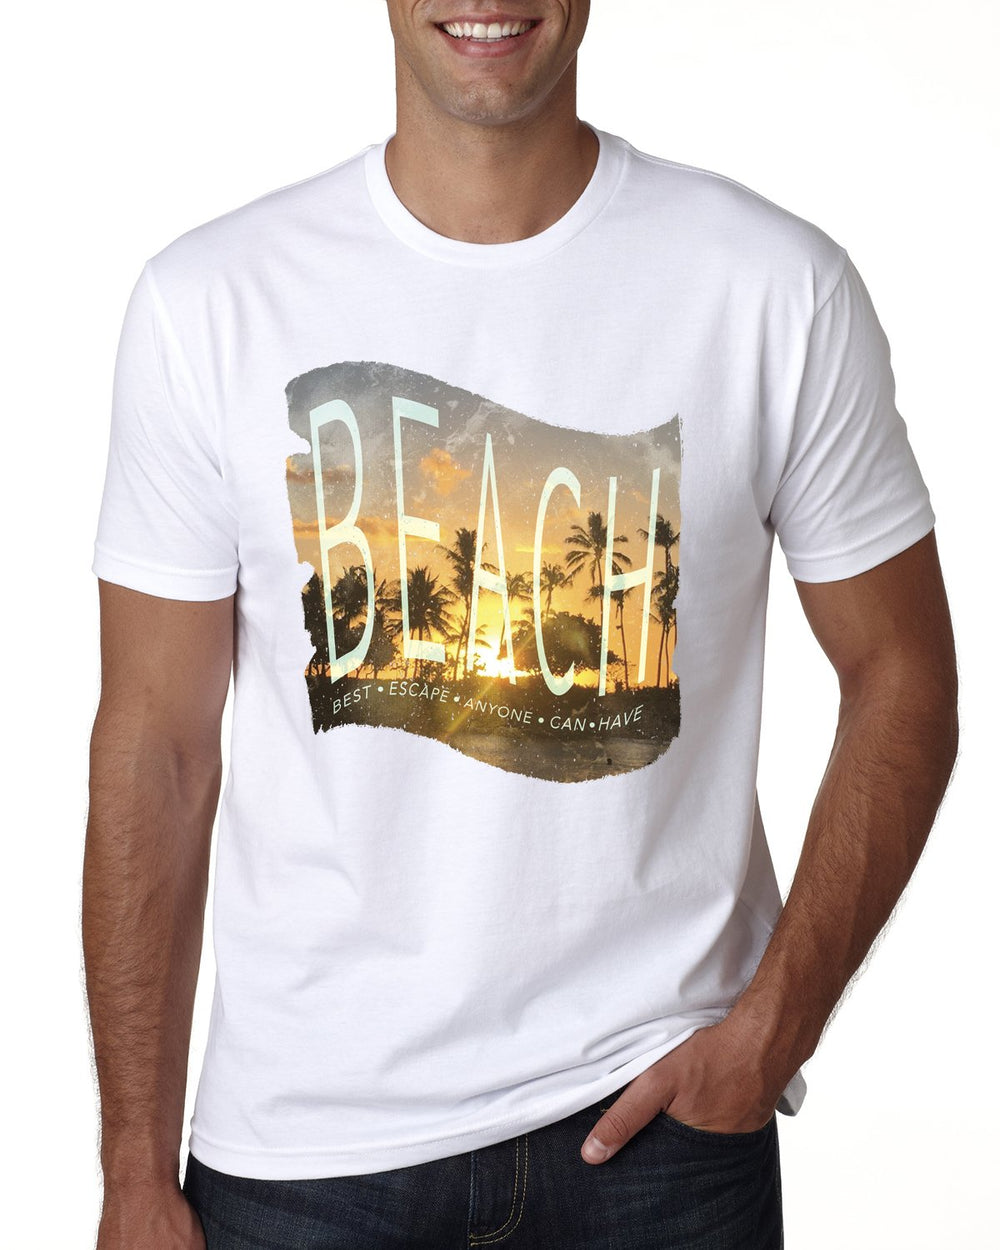 BEACH Escape Mens T-shirt-nelsonmakesart